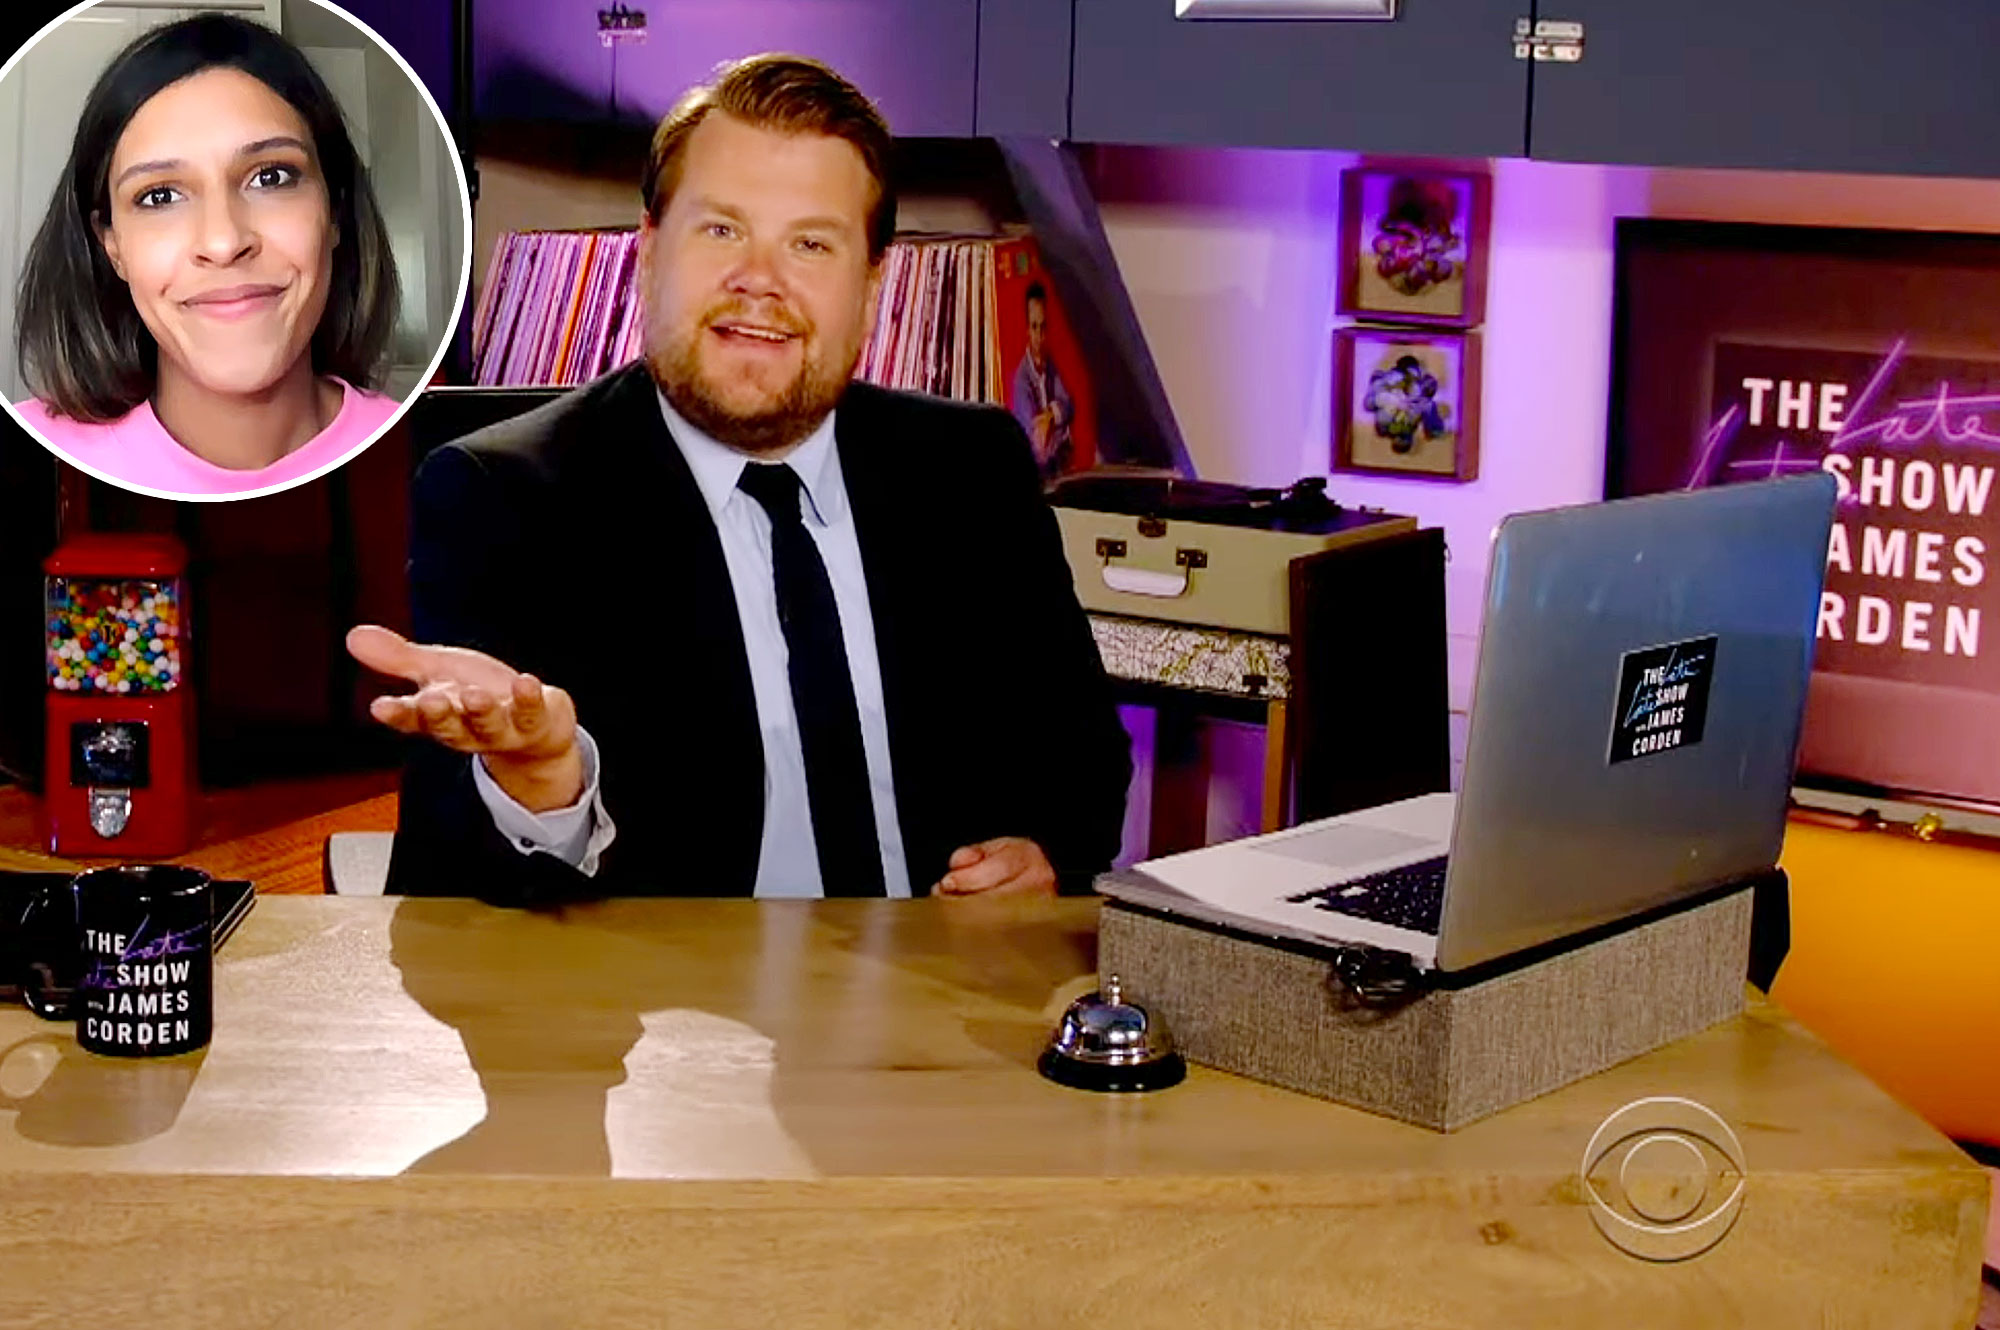 James Corden Late Late Show Staffer Gives Him a Lesson in White Privilege